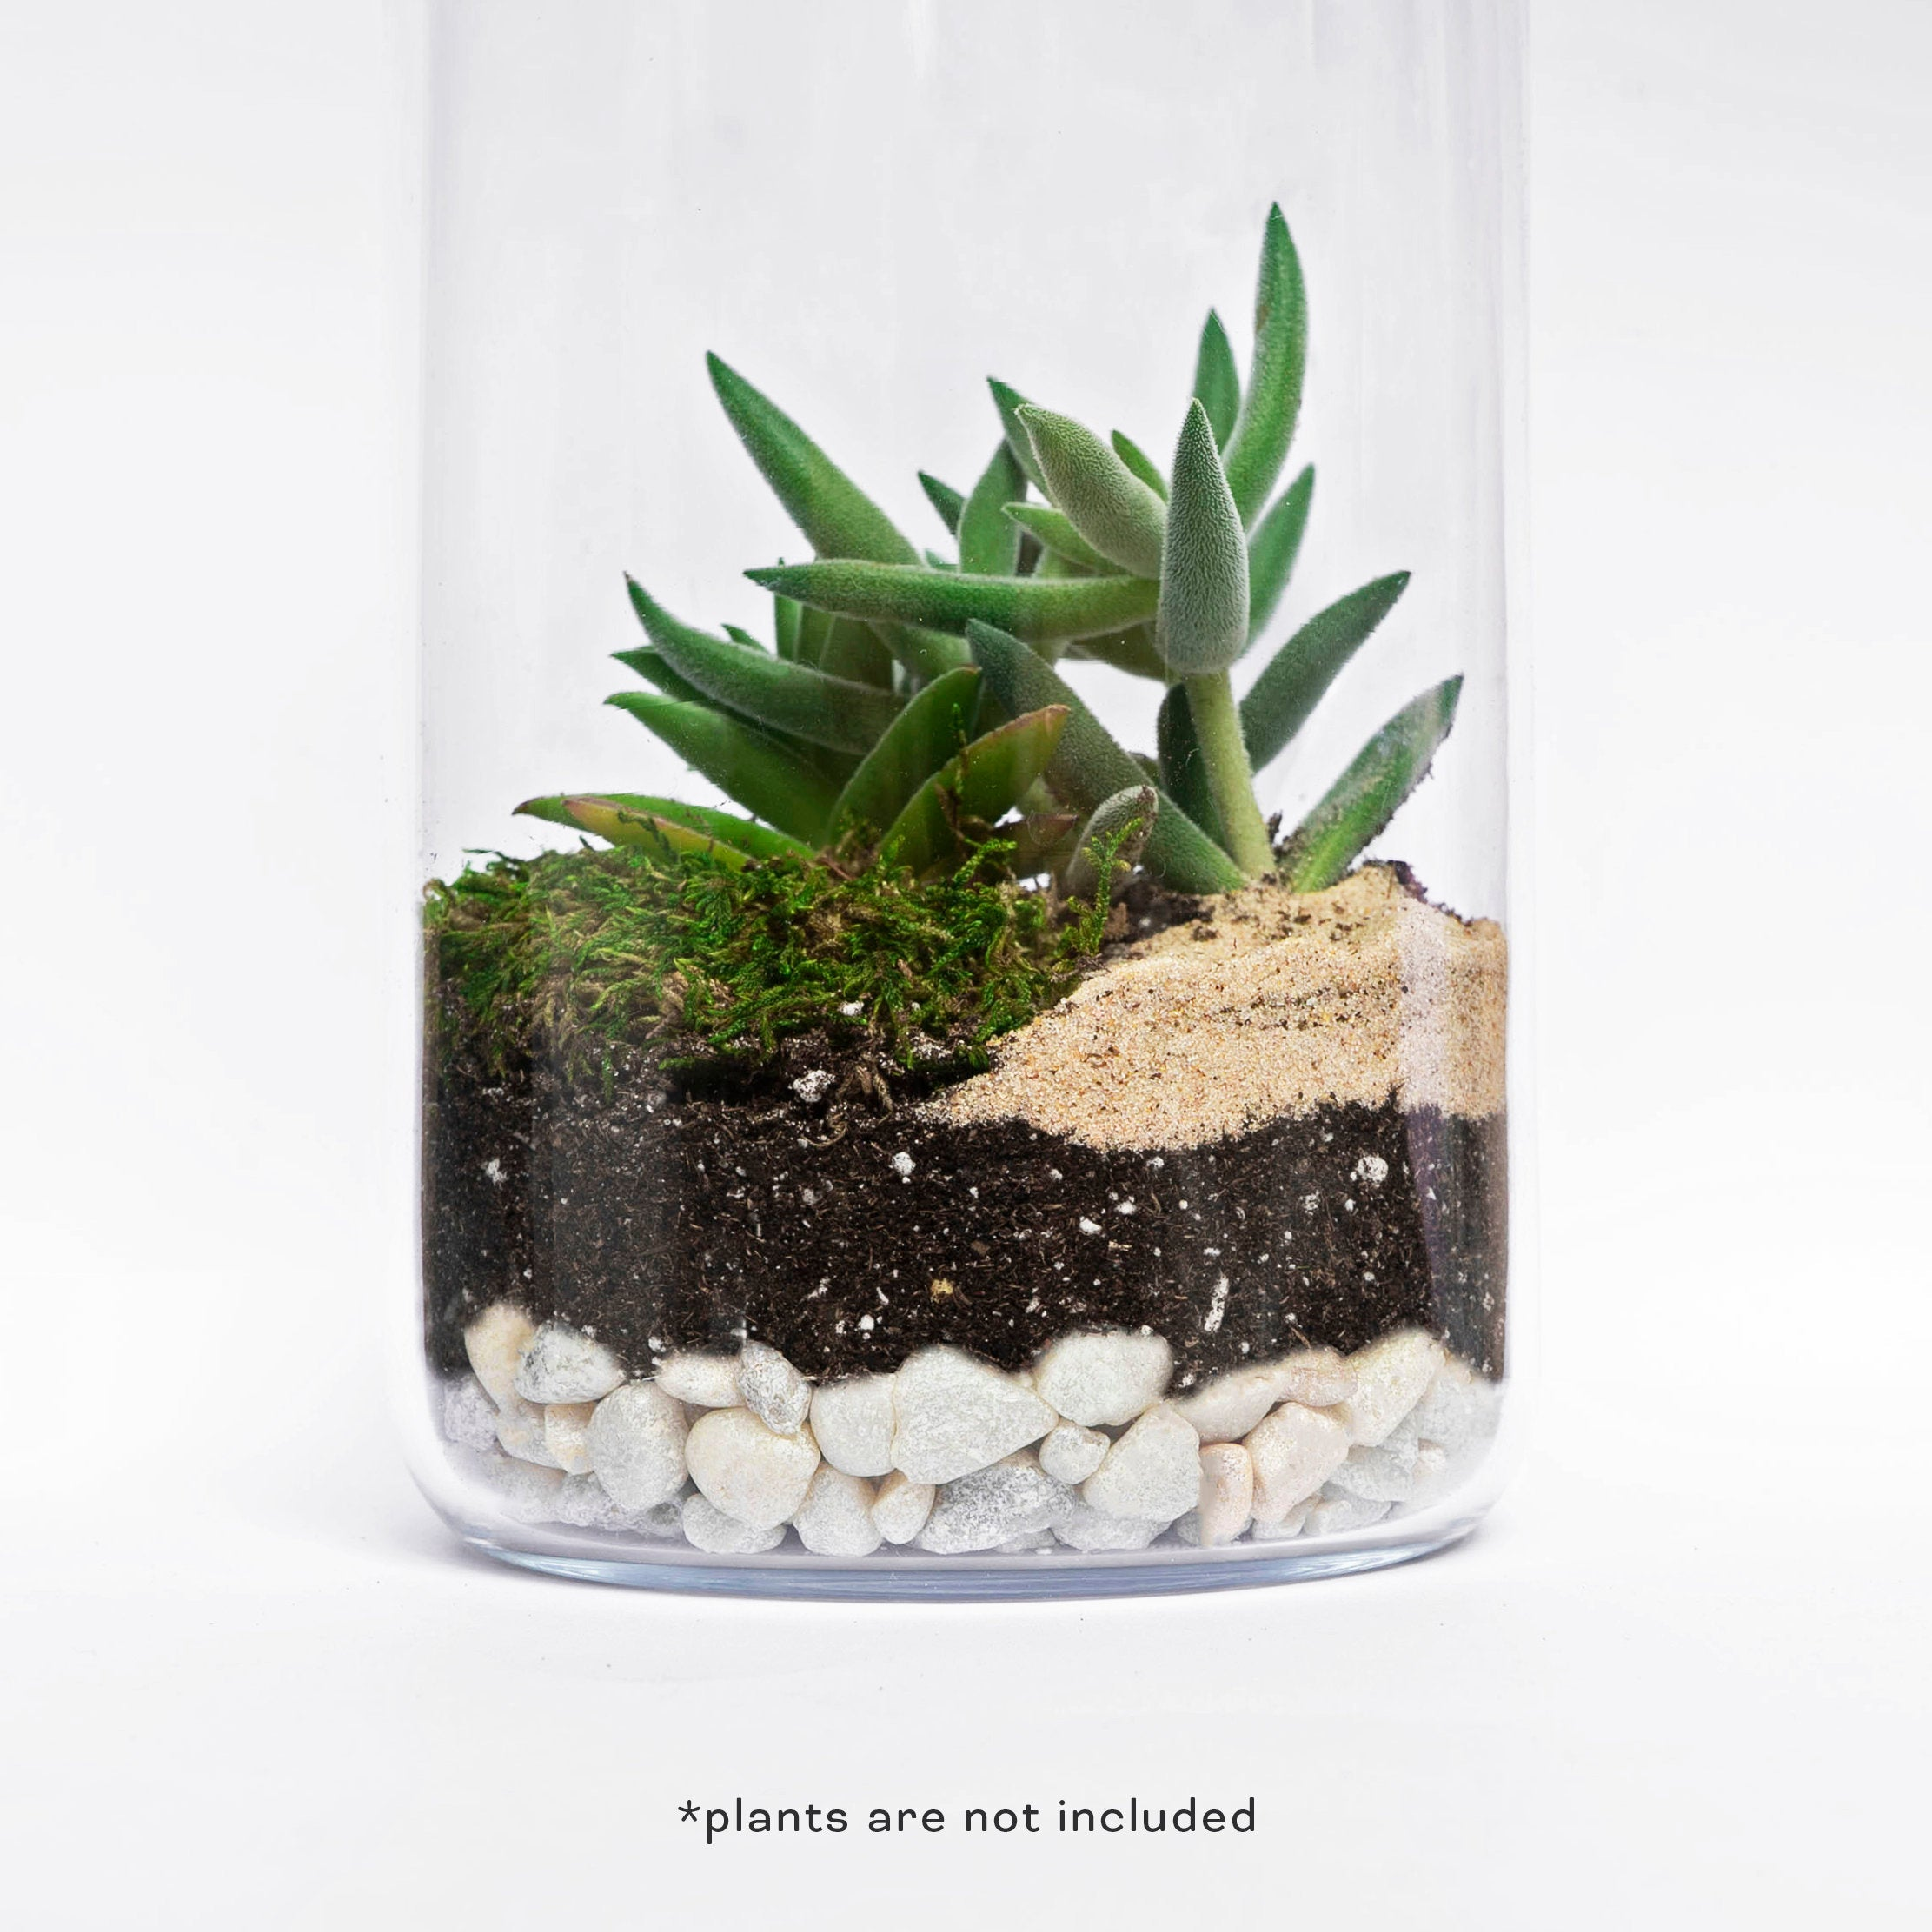 MOCTUS DIY Forest Terrarium Kit includes Beige Sand, Pearl Stones, Soil and Moss